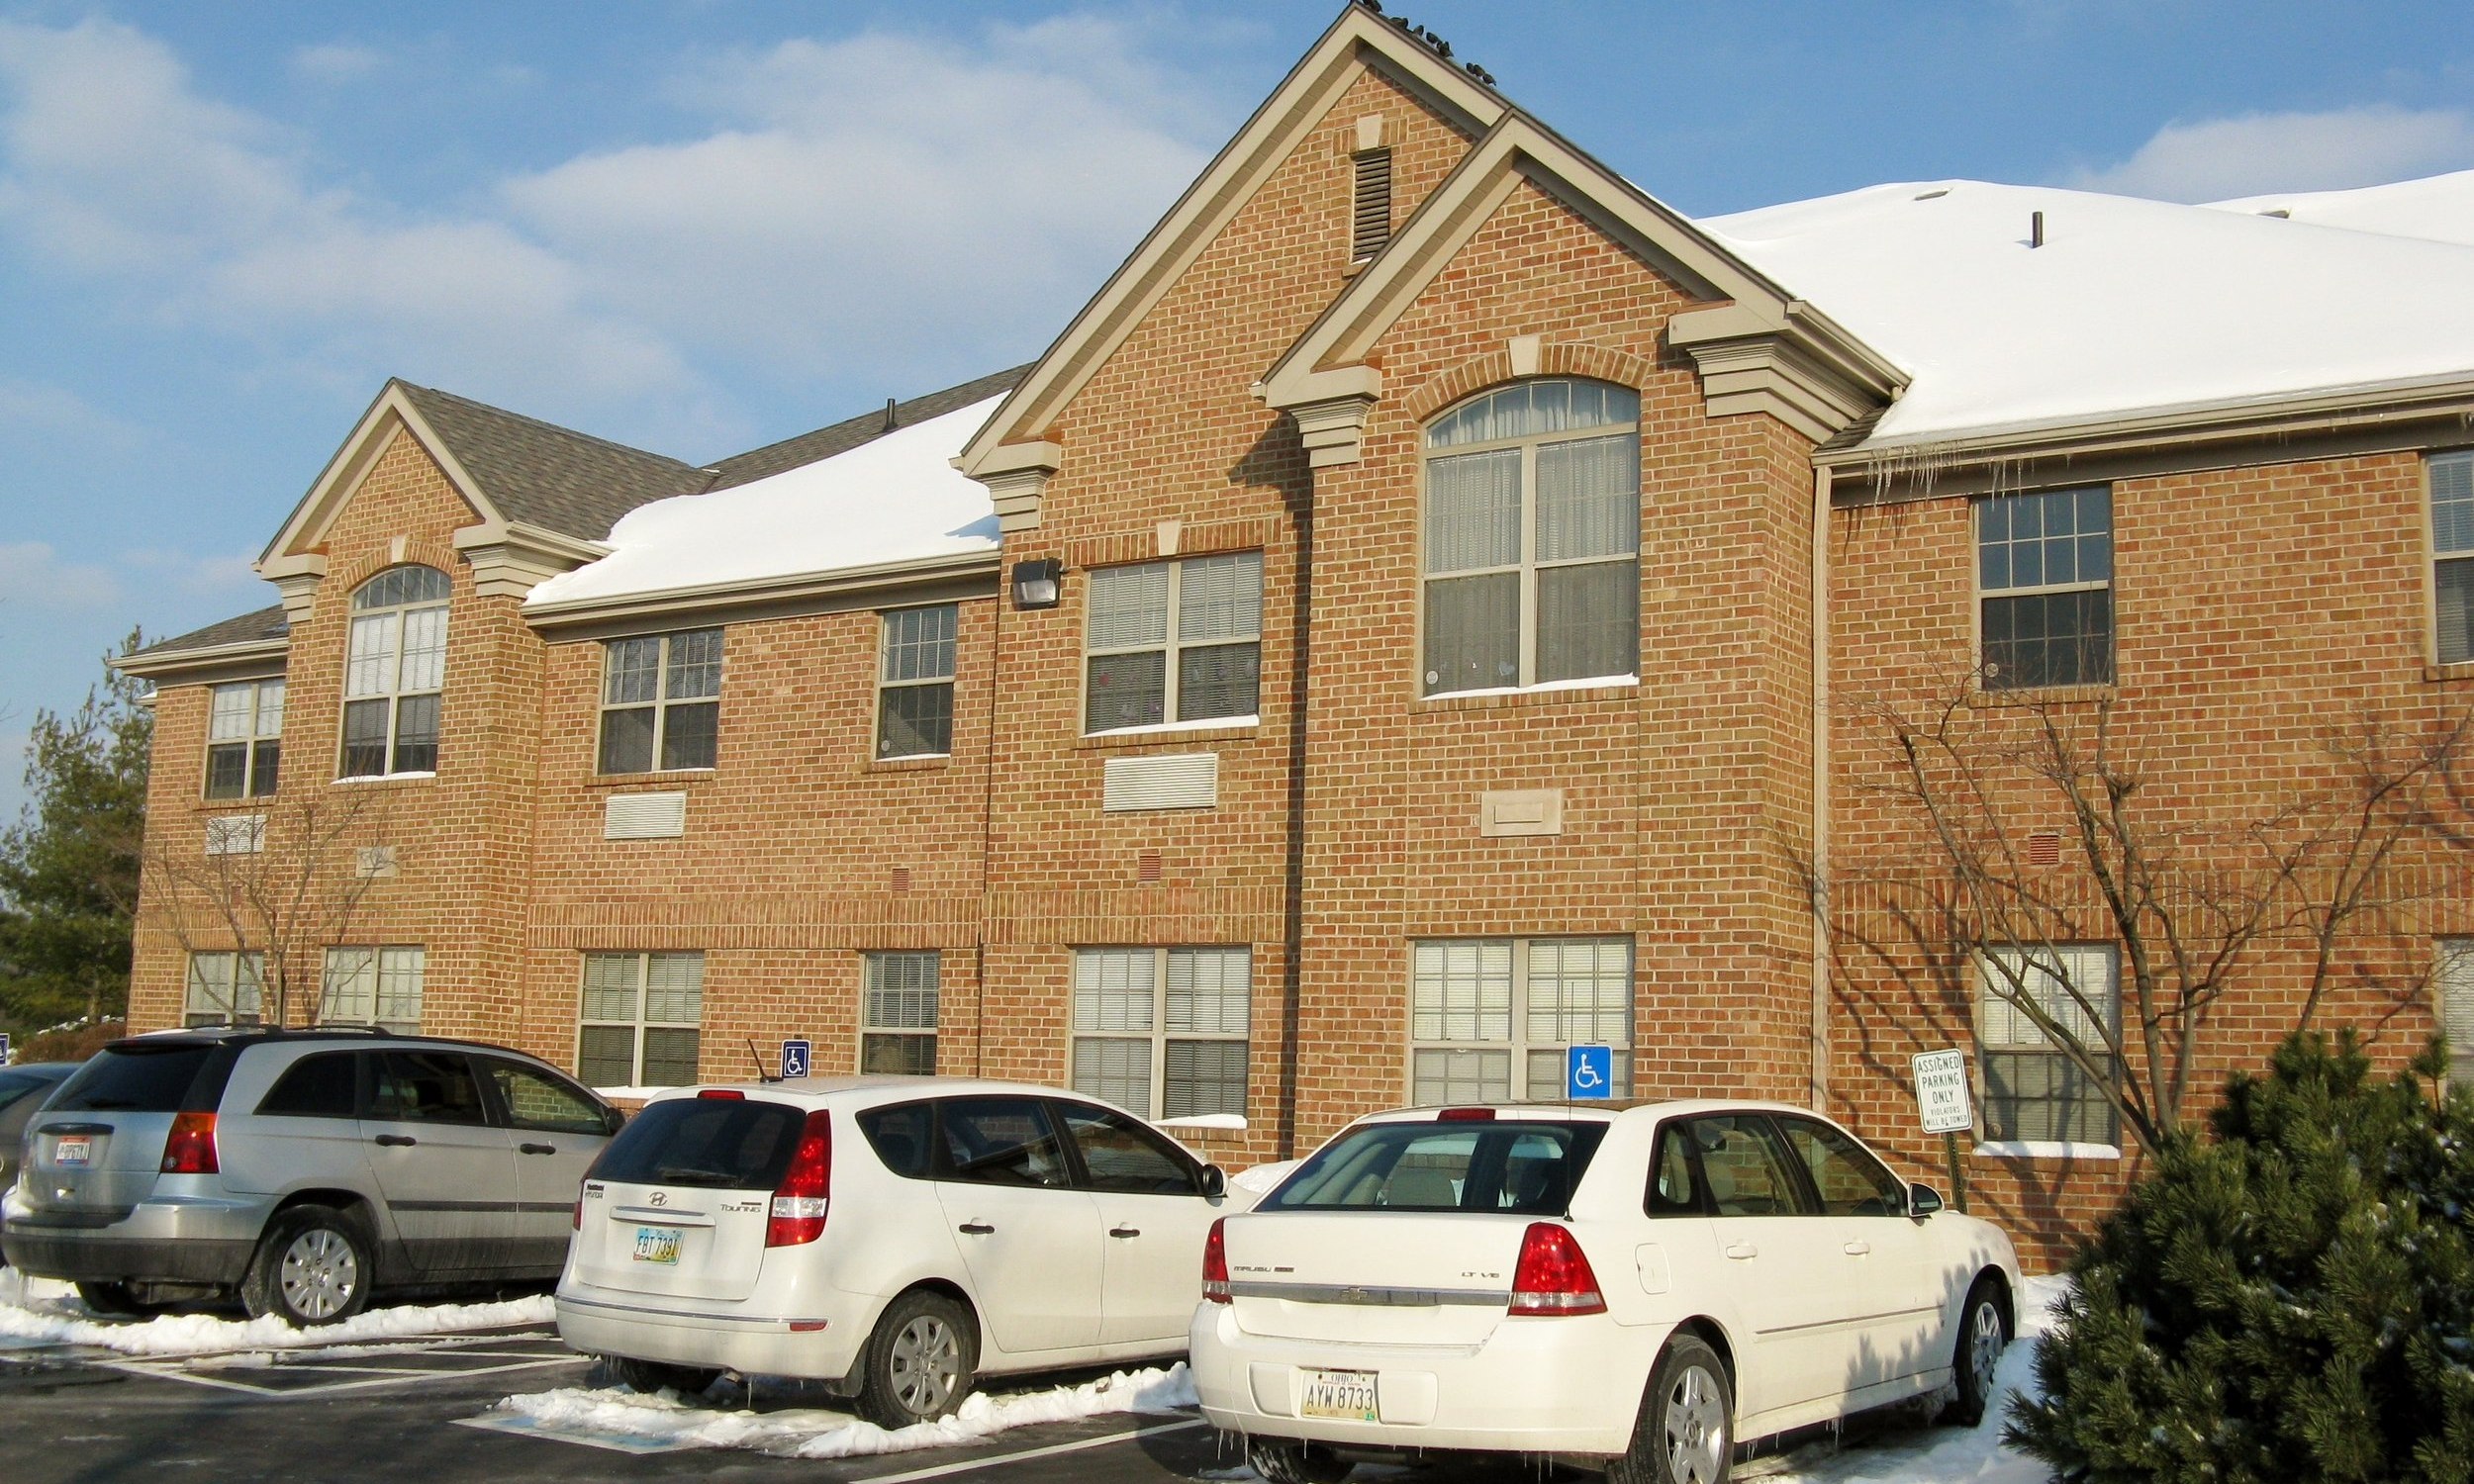 AHEPA 113 Senior Apartments - 2300 County Line RoadBeavercreek, OH 45430(937) 431-0808TTY: (800) 750-0750 or 711 (English)TTY: (888) 269-0678 or 711 (Español)info@ahepahousing.org